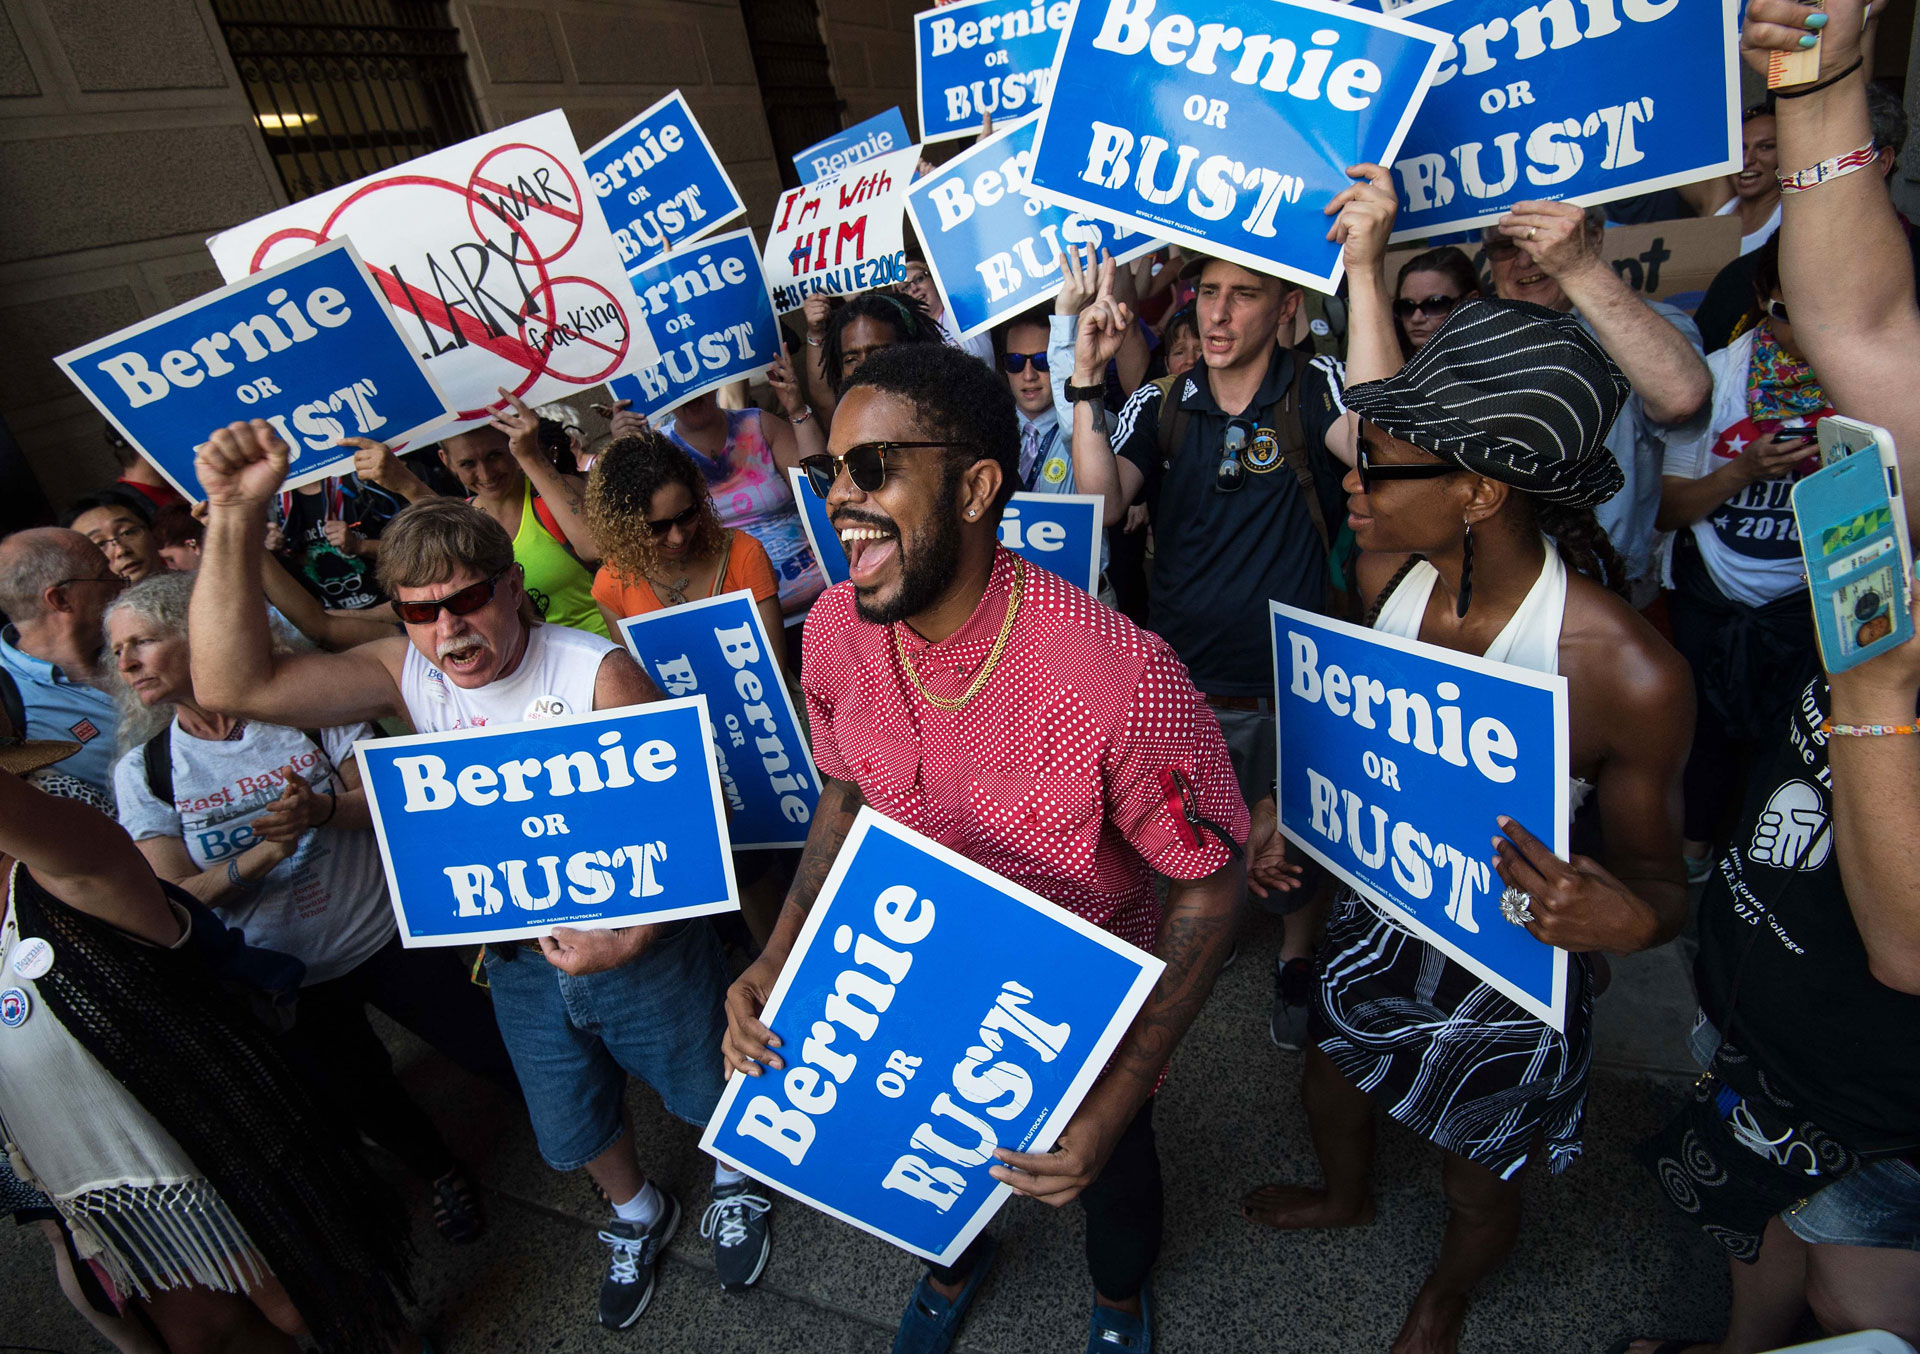 Supporters of Bernie Sanders hold signs at a rally at City Hall in Philadelphia on July 25, 2016,